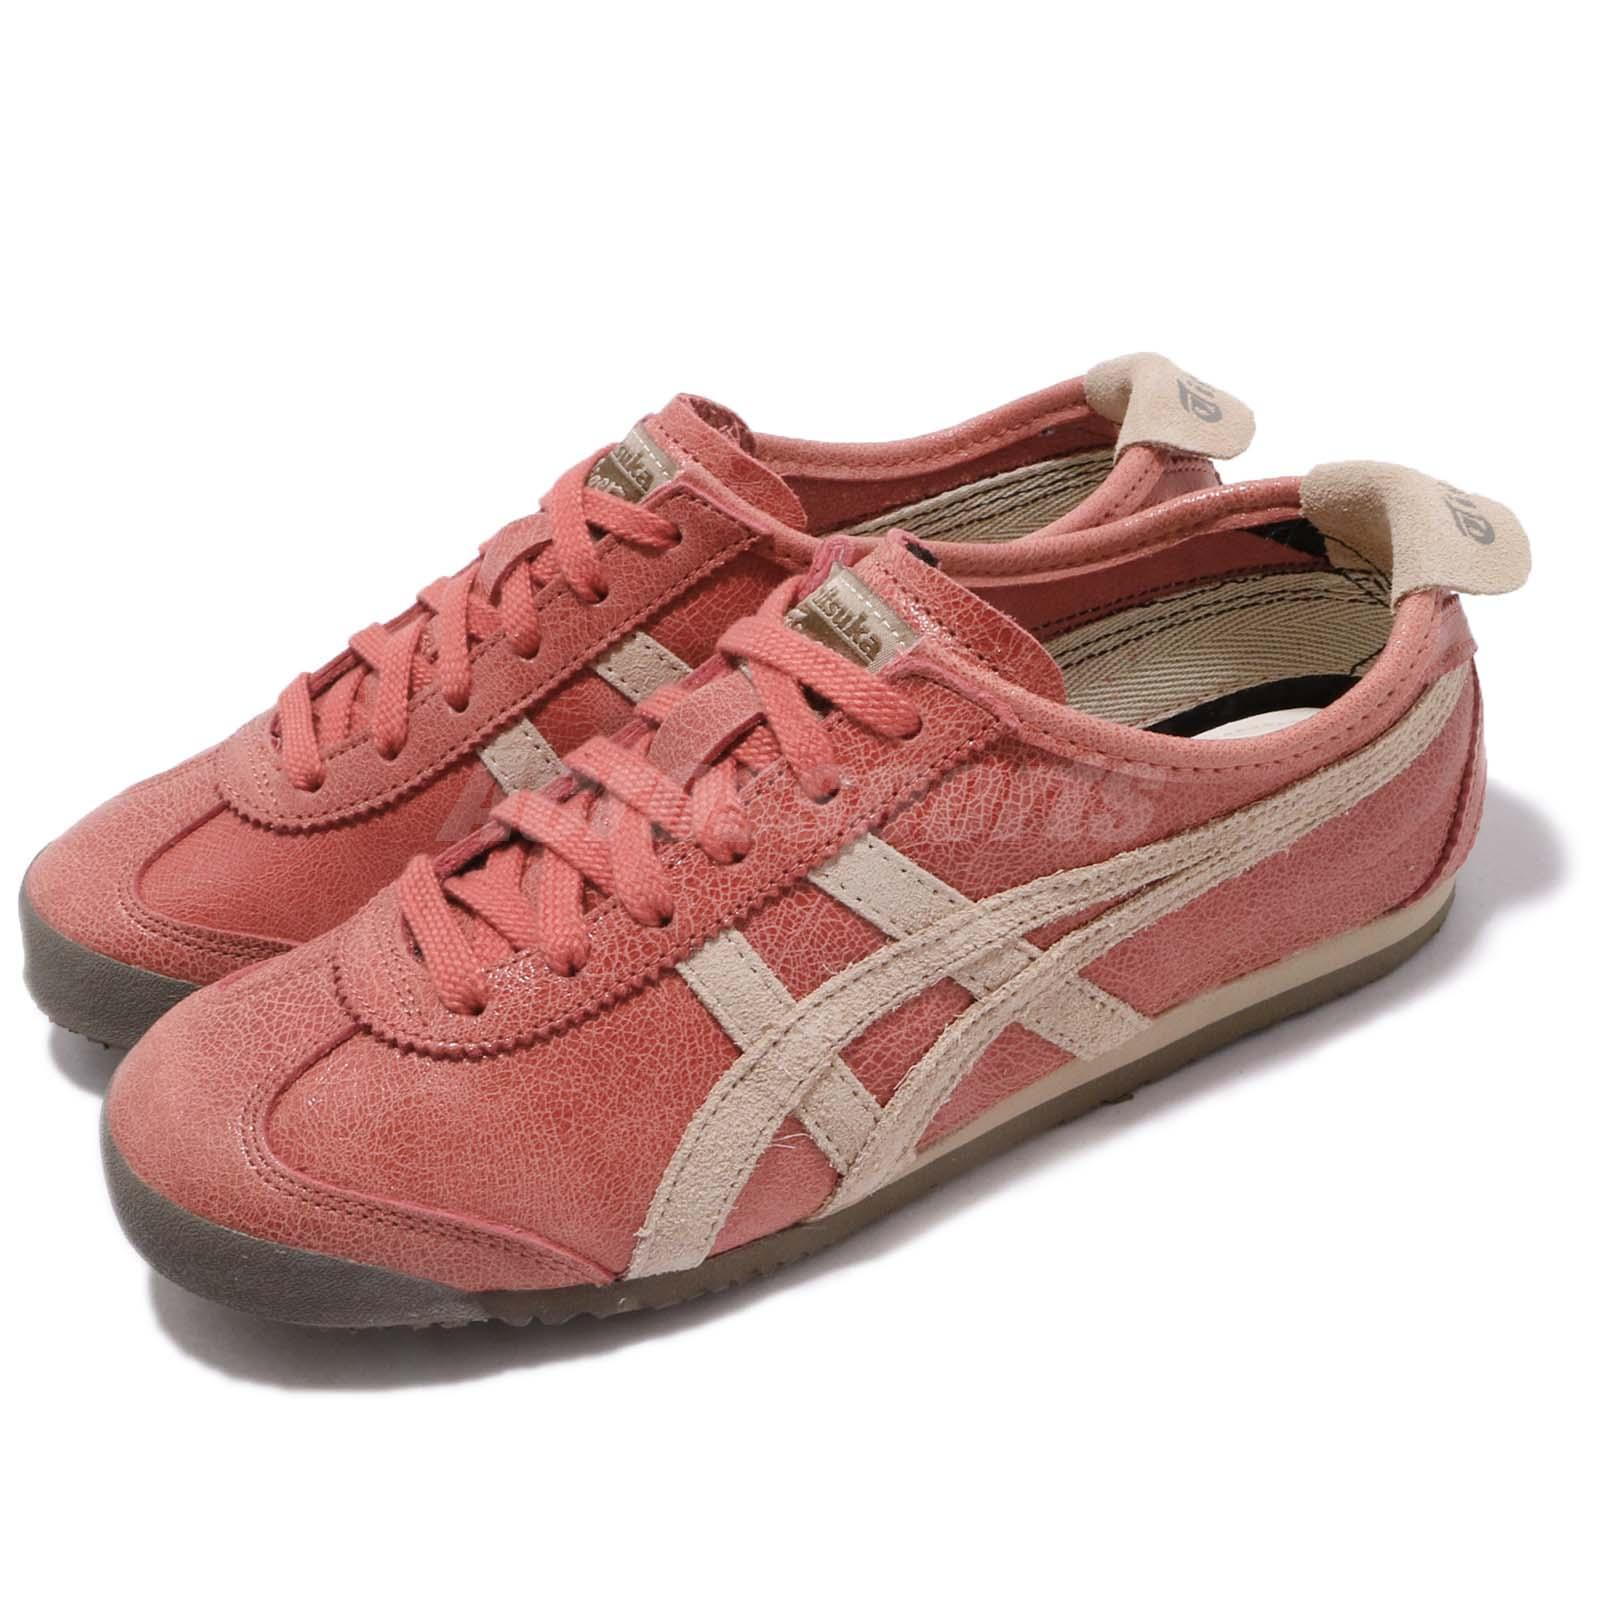 Details about Asics Onitsuka Tiger Mexico 66 Red Brick Men Women Running  Shoes 1183A032-600 5d40e08b18